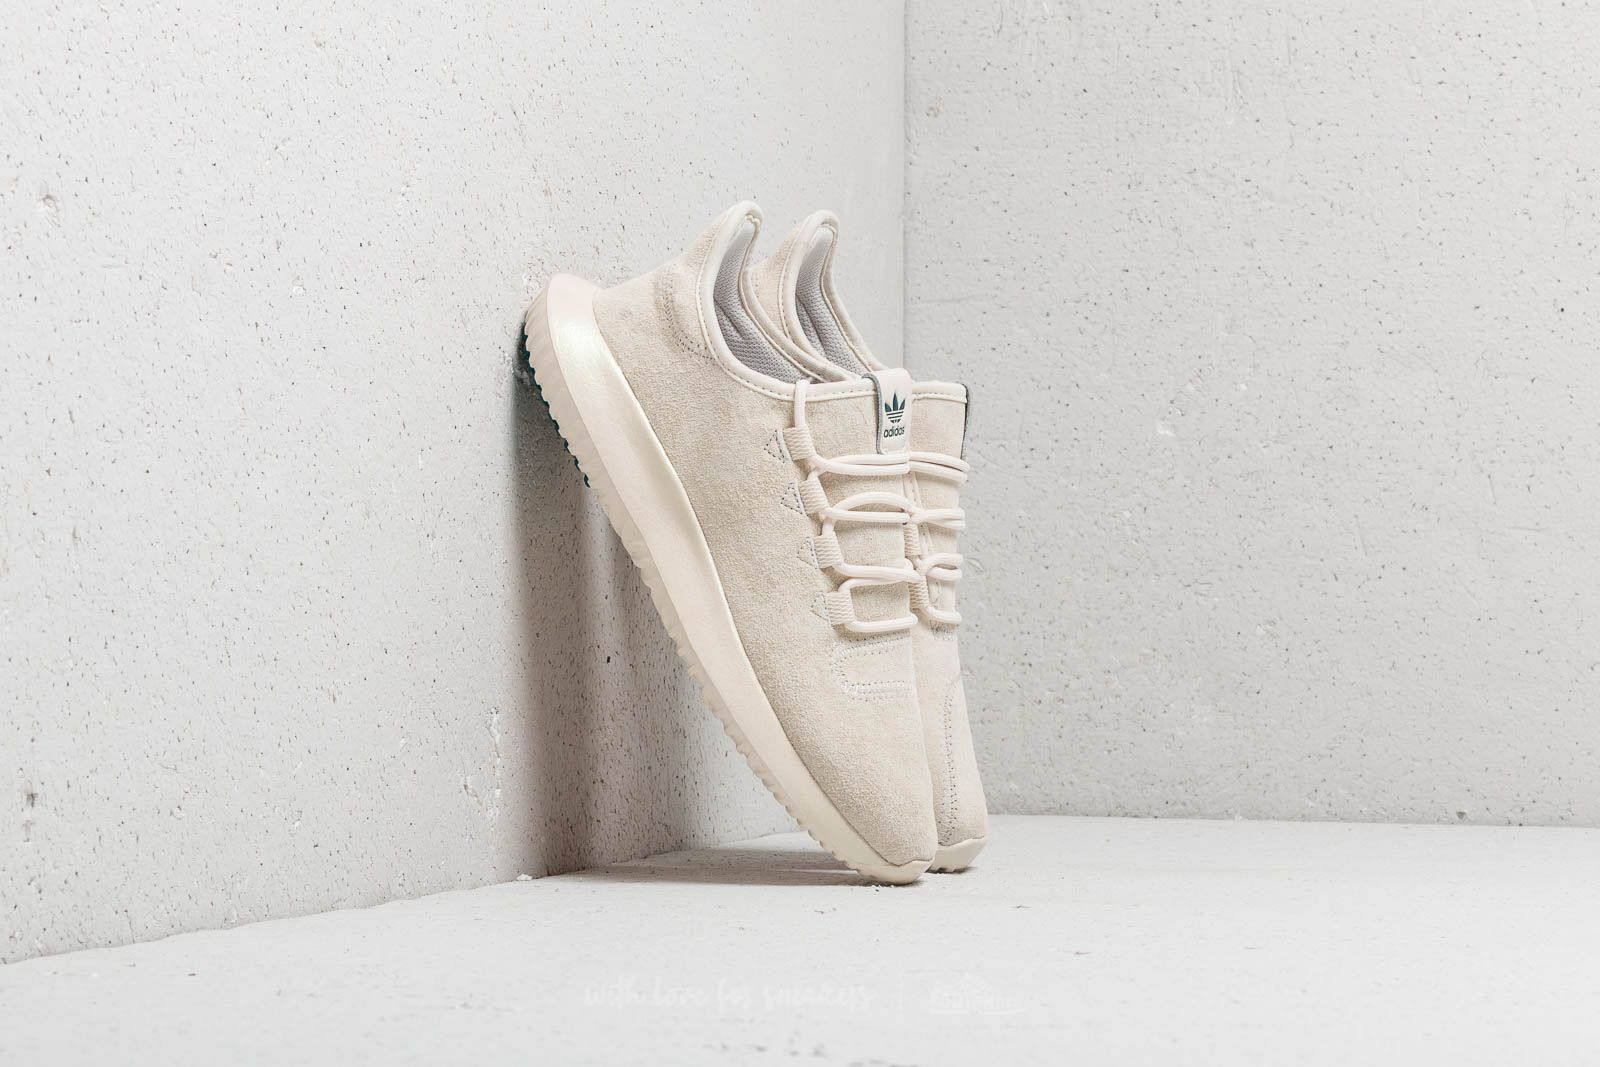 separation shoes 1e093 8cebd adidas Tubular Shadow W Core White Shock Pink Utility Green at a great  price